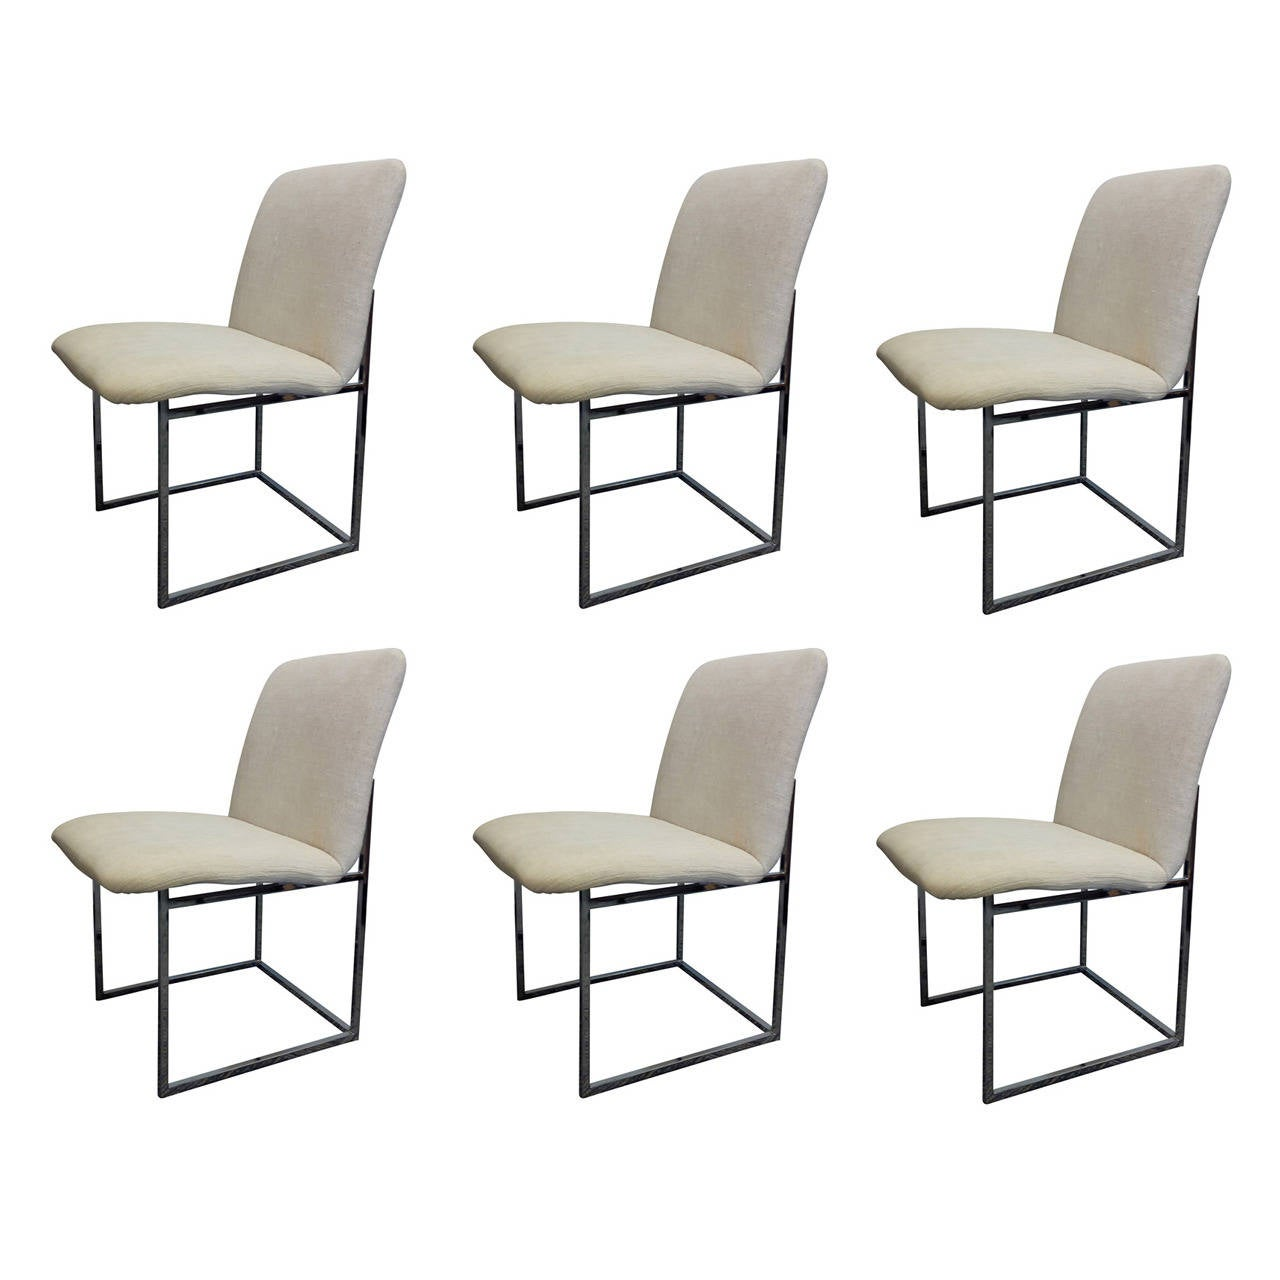 Simple Minimalist Dining Set: Set Of 6 Minimalist Dining Chairs By DIA At 1stdibs